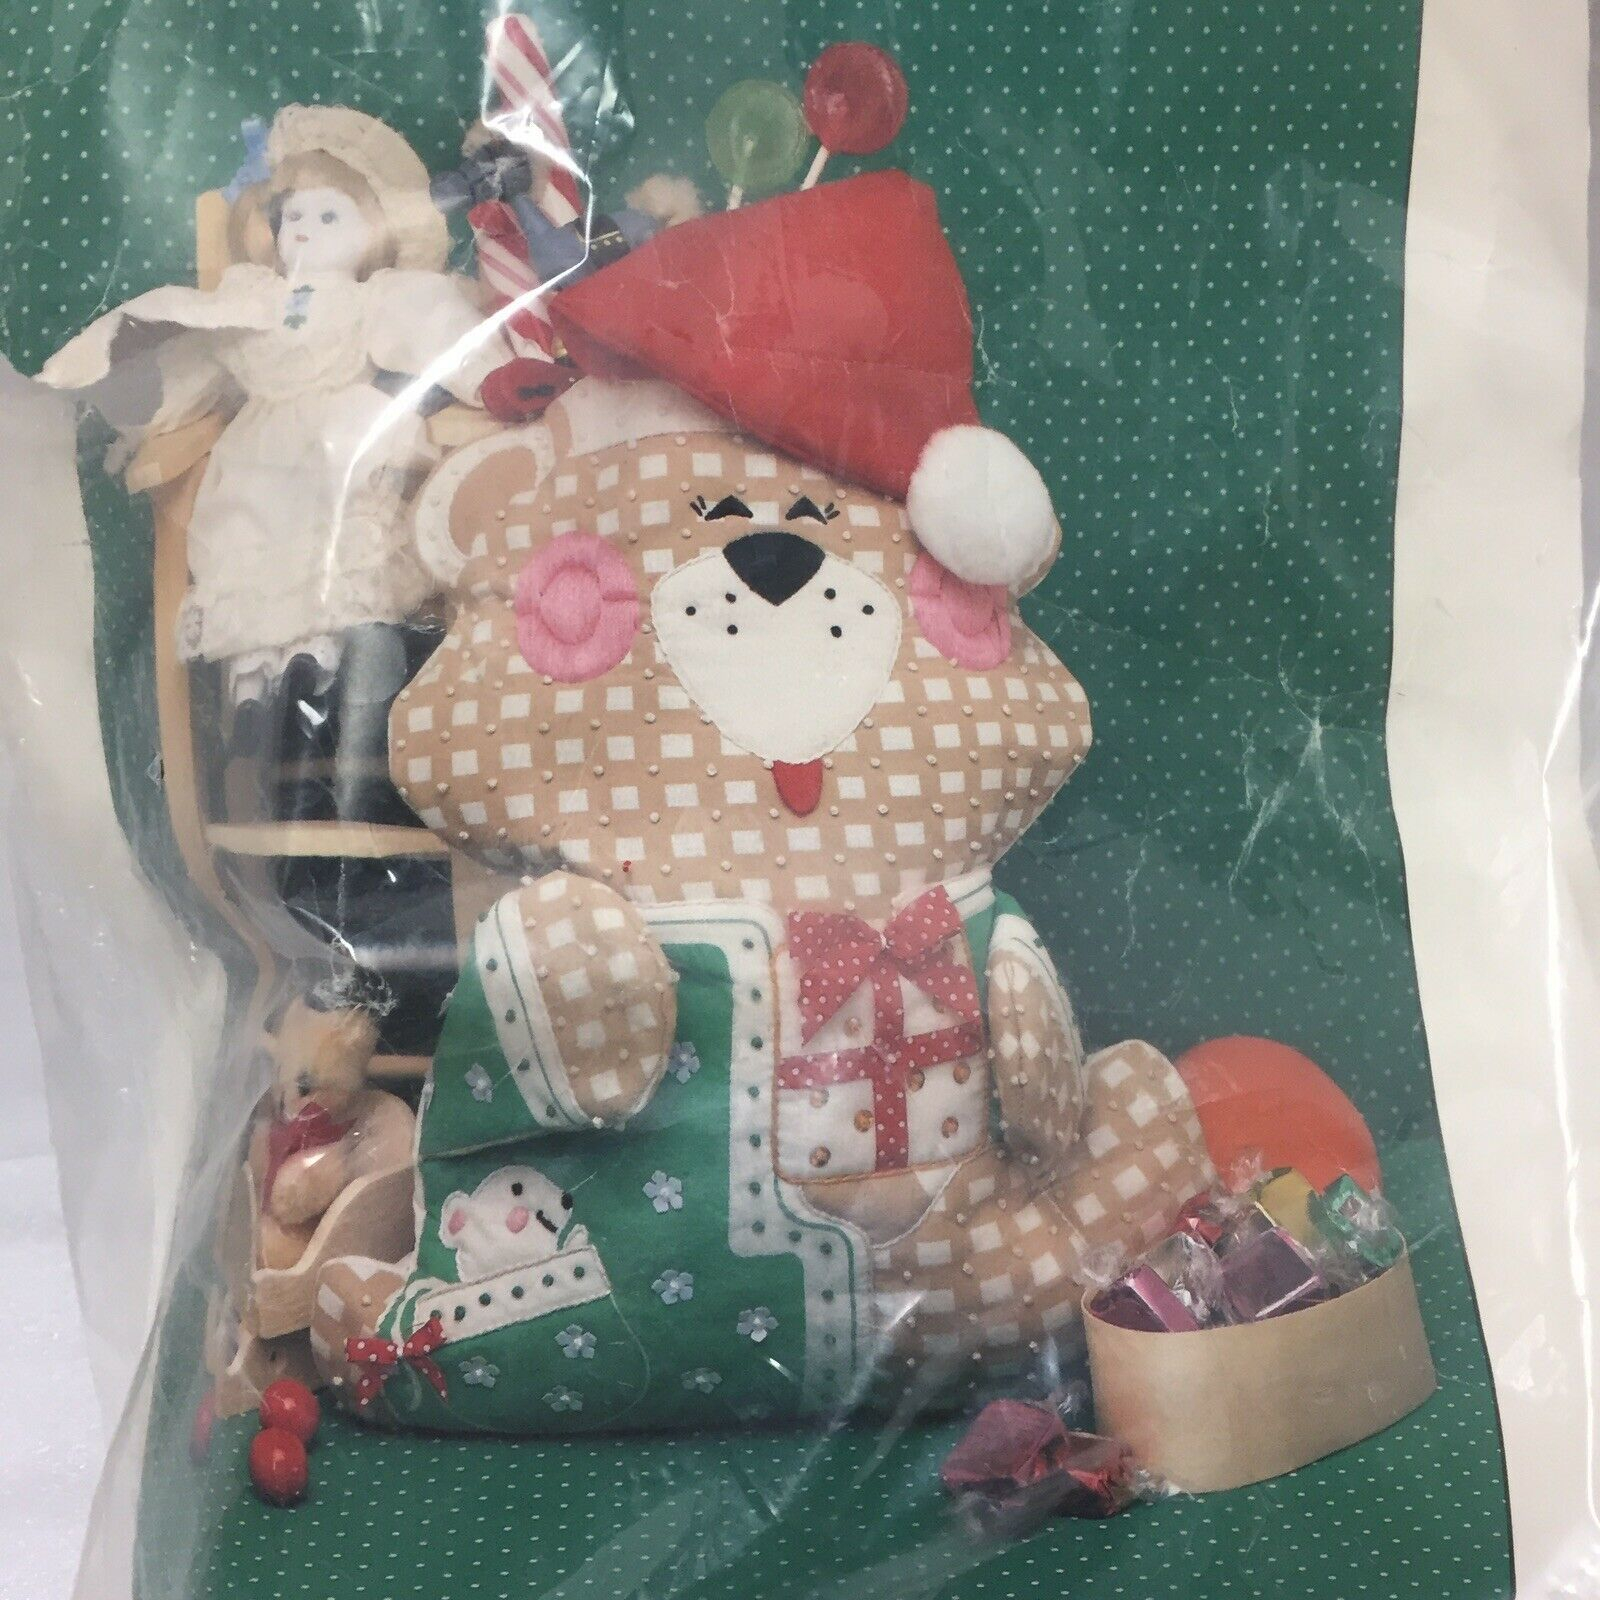 Daydreams Designed By Dick Martin Teddy Stocking Embroidery Kit 825 Old Stock - $14.01